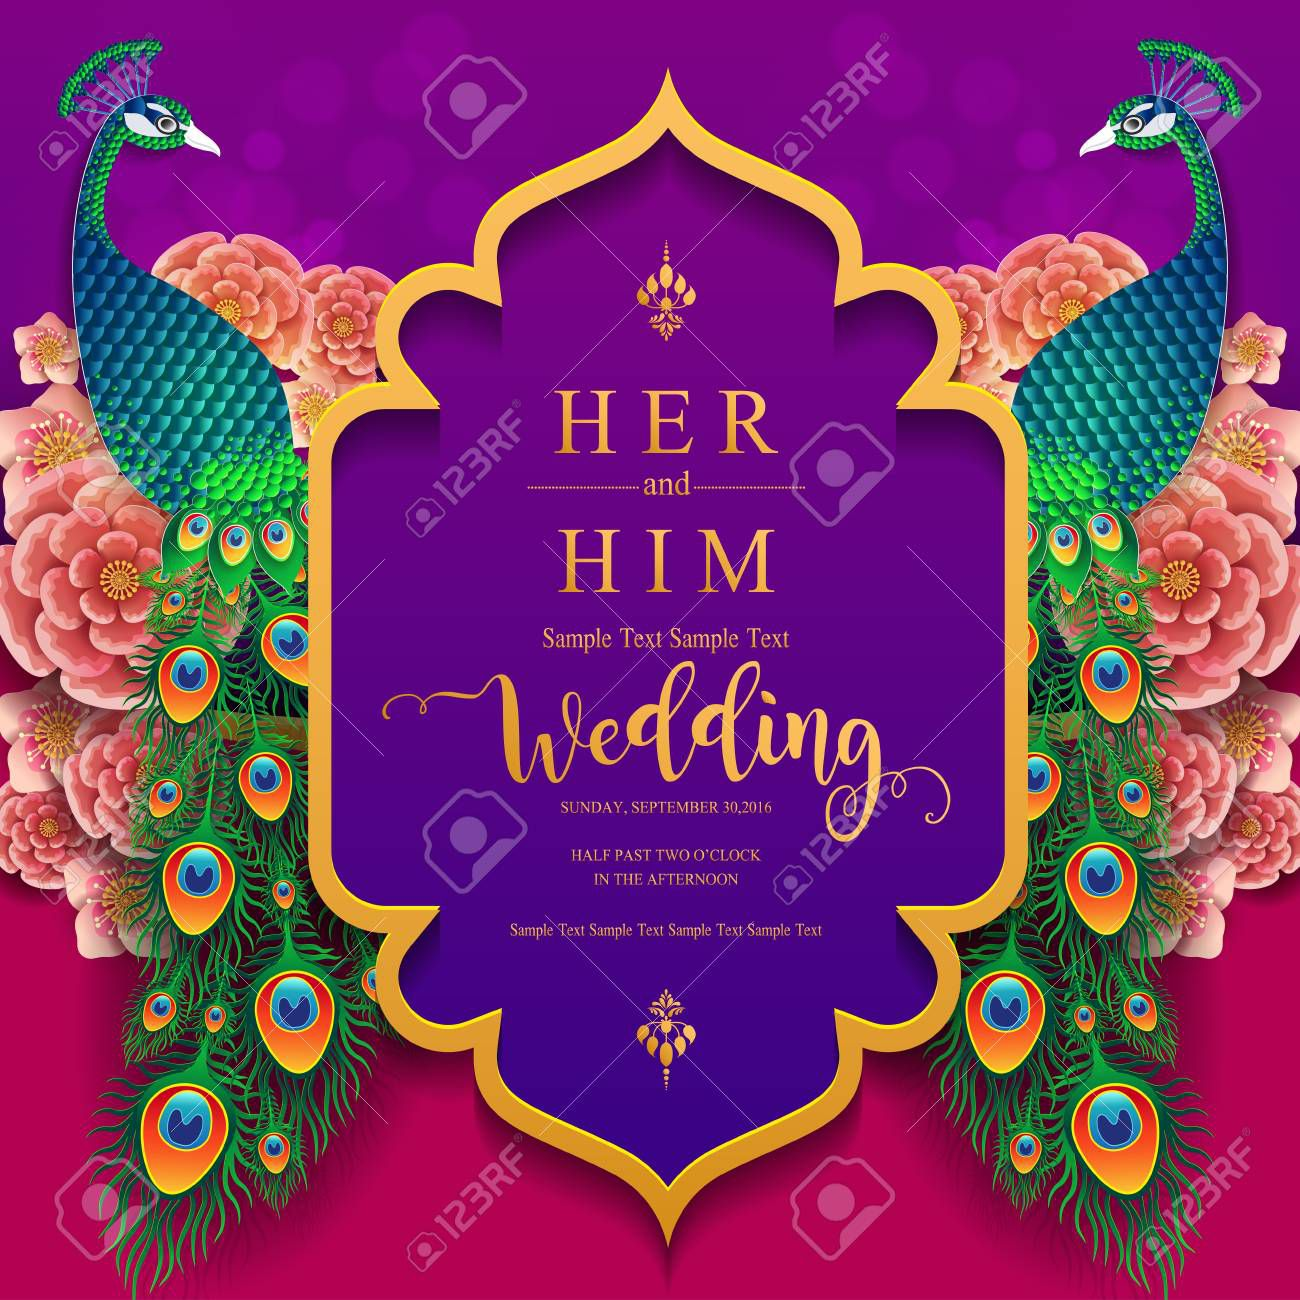 006 Incredible Indian Wedding Invitation Template High Def  Psd Free Download Marriage Online For FriendFull